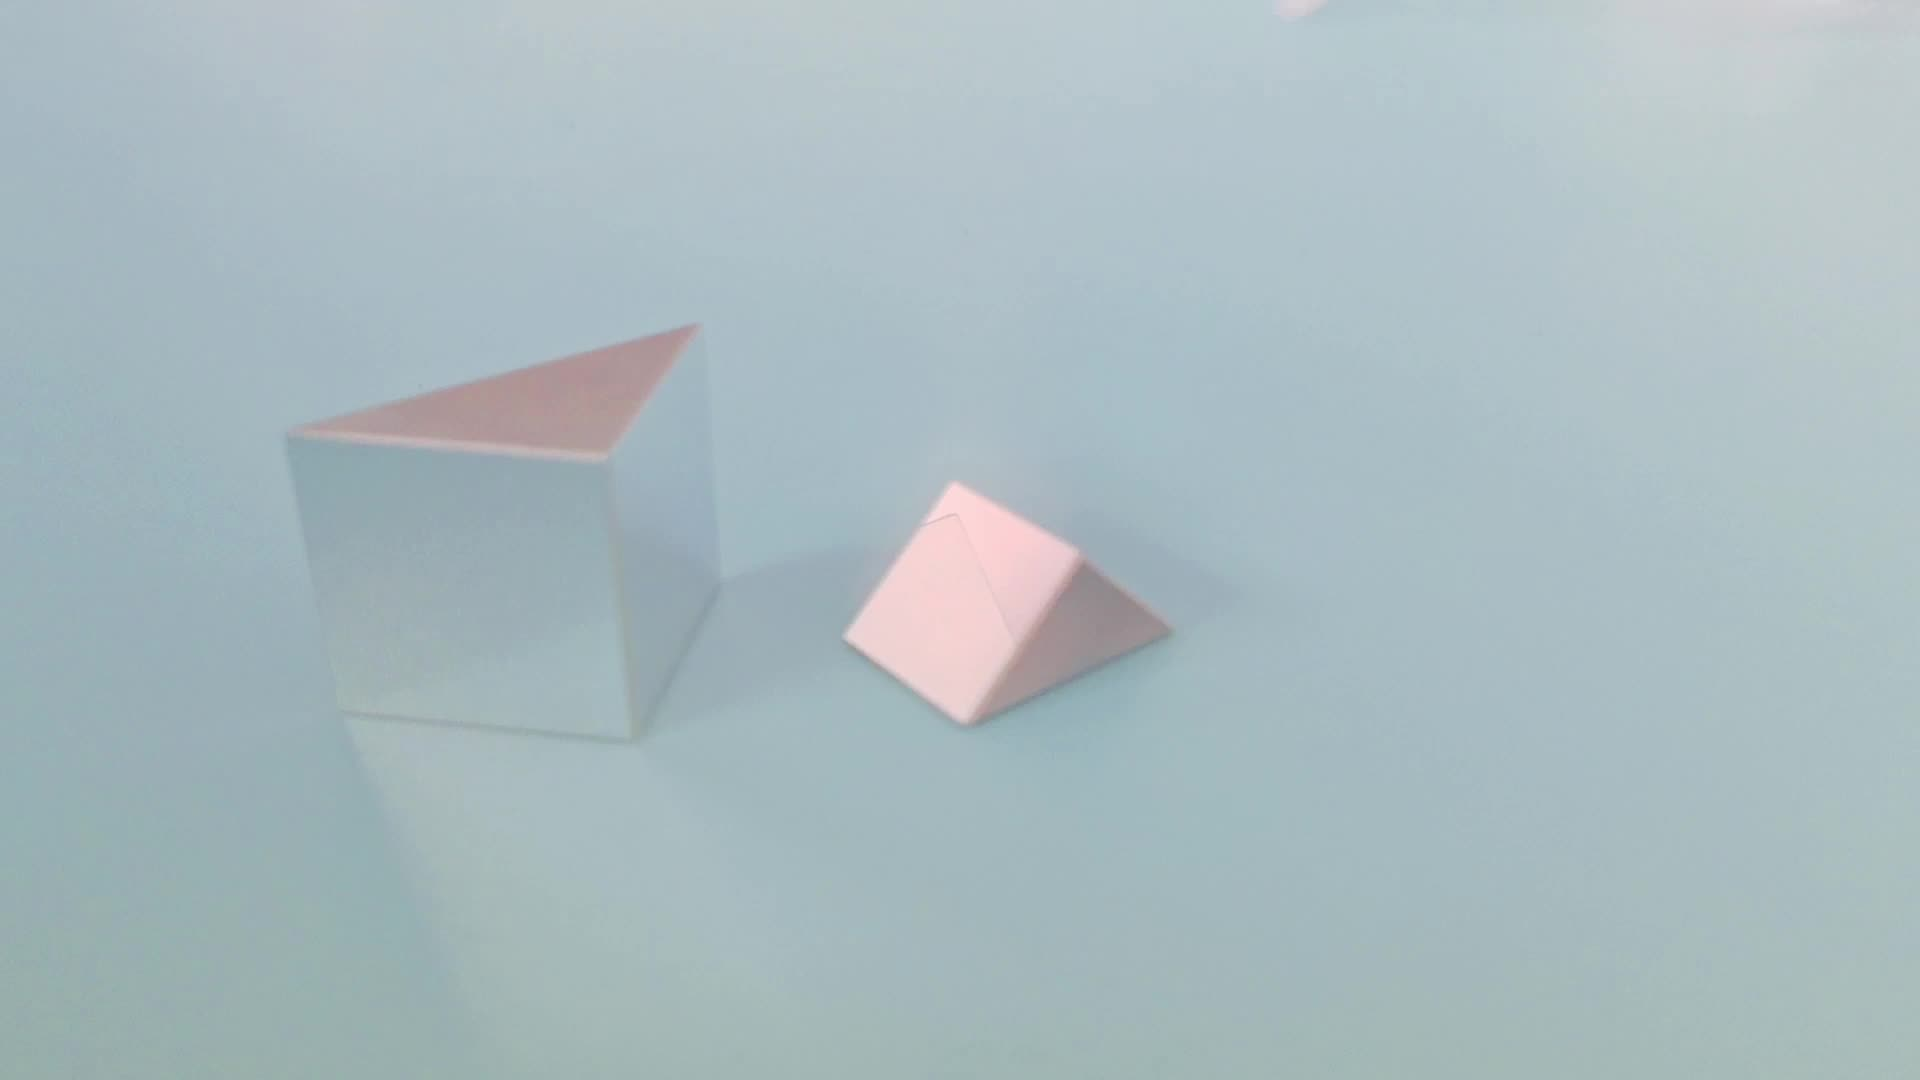 N-BK7/Fused silica Equilateral triangular Right angle prism with Al,Au,Ag ,HR coating